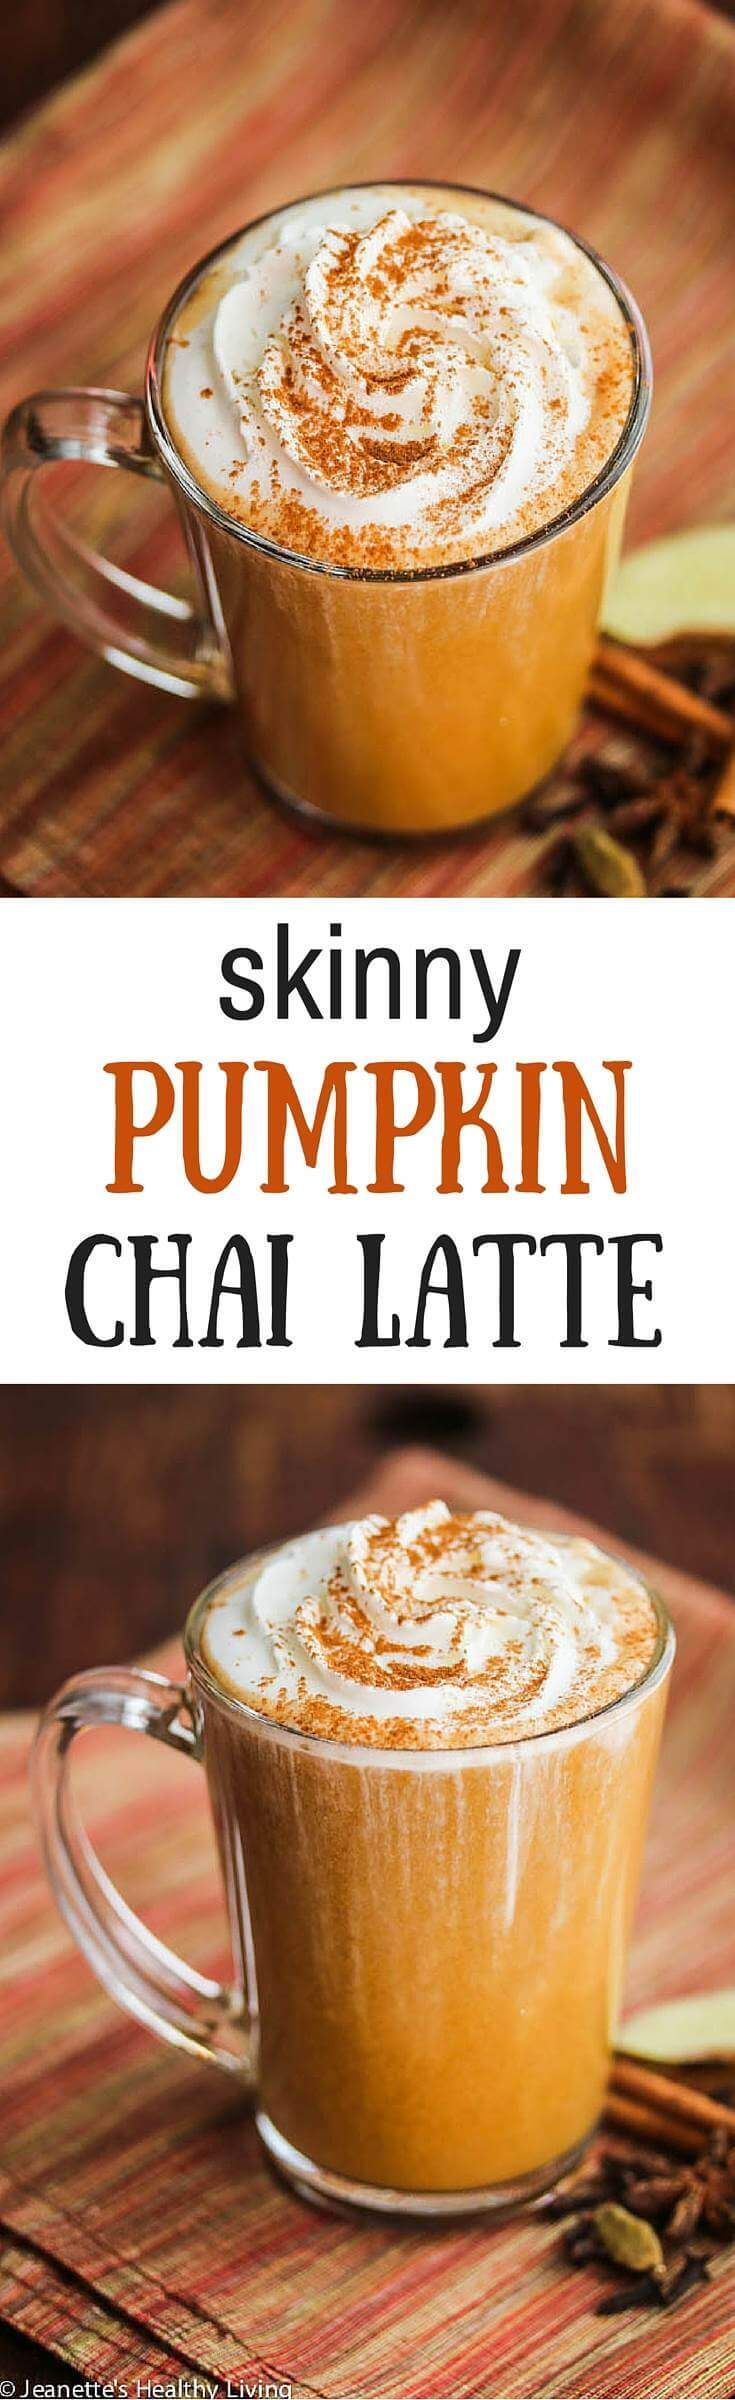 Skinny Pumpkin Chai Latte Recipe - there are just 143 calories in a serving in this warm, cozy pumpkin chai latte ~ http://jeanetteshealthyliving.com